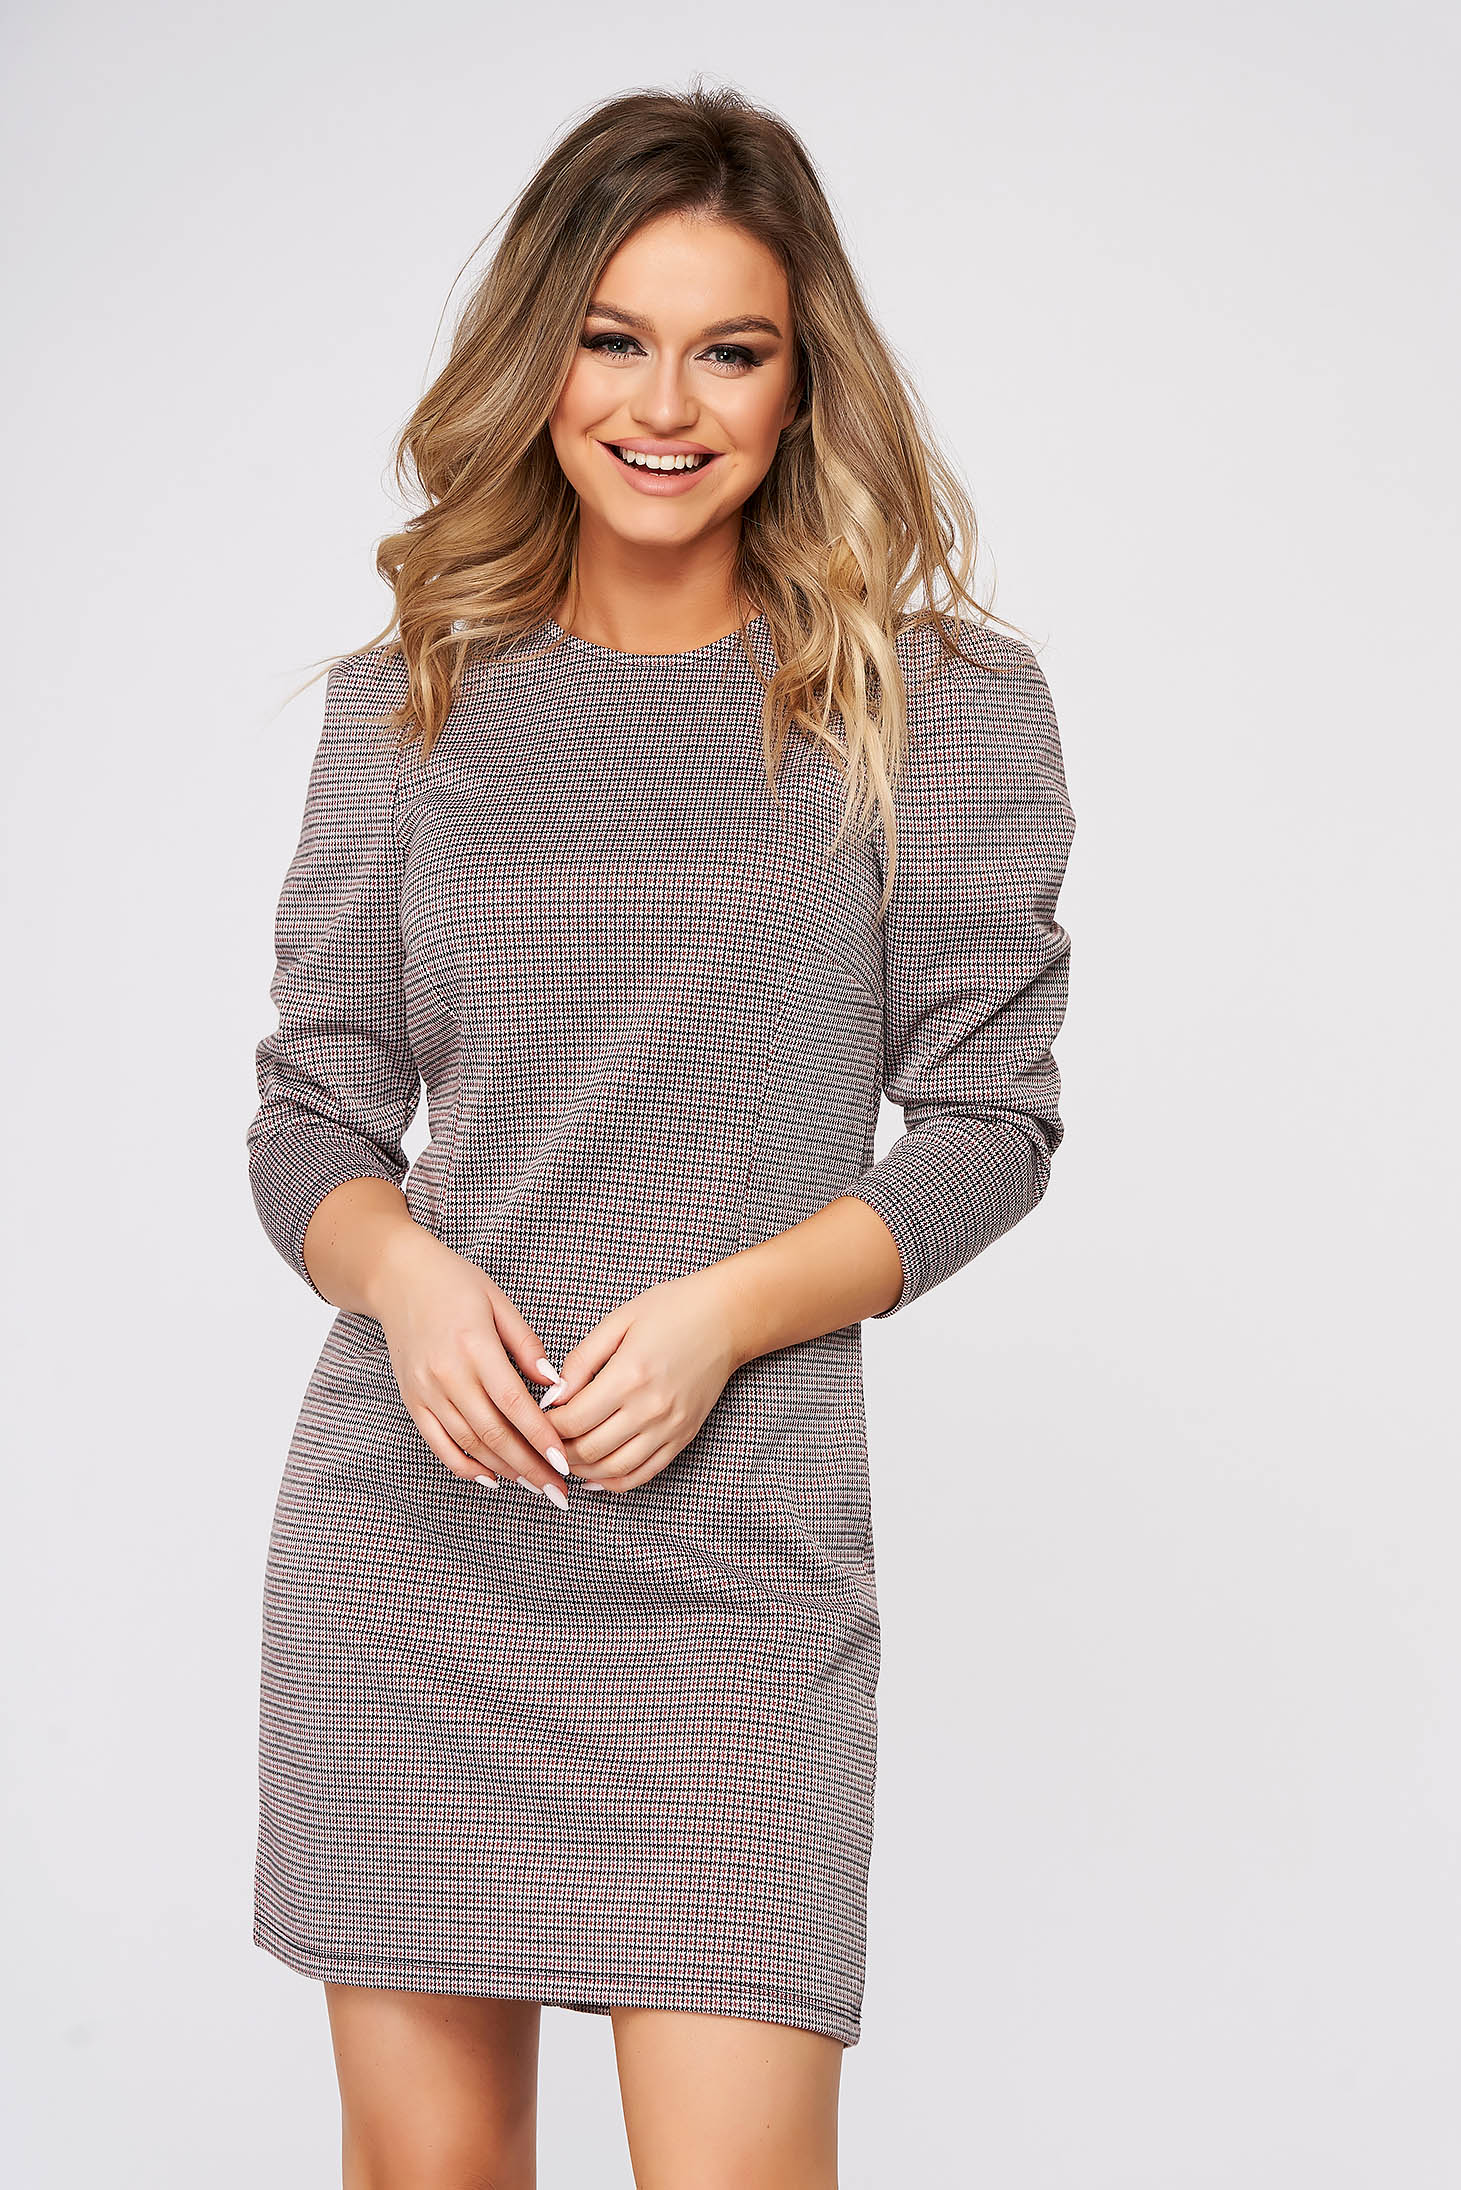 Grey dress short cut daily high shoulders with chequers